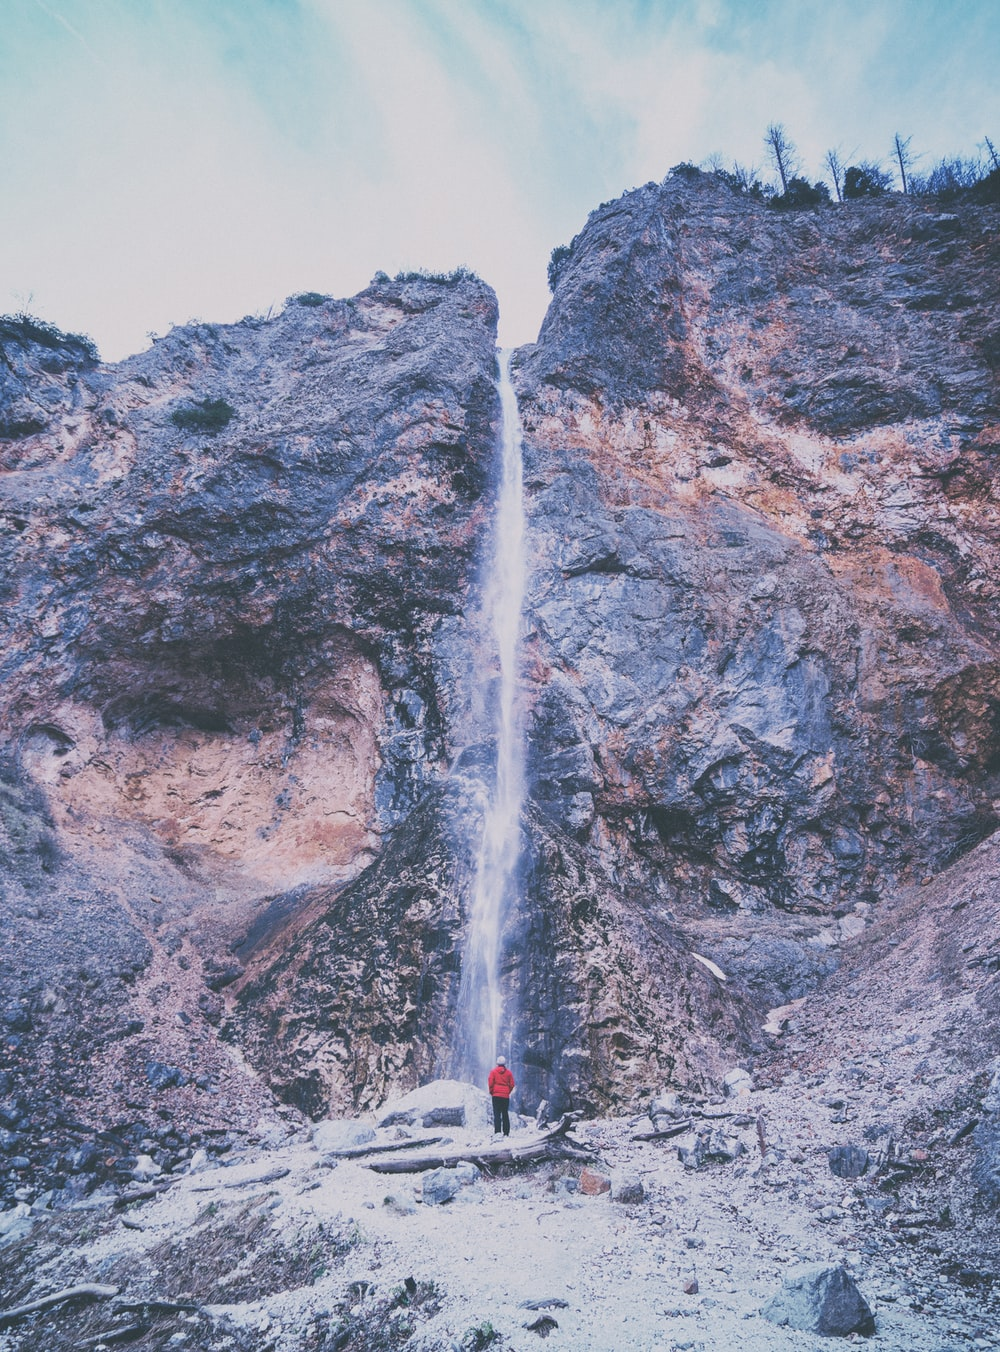 person wearing red jacket standing near waterfalls